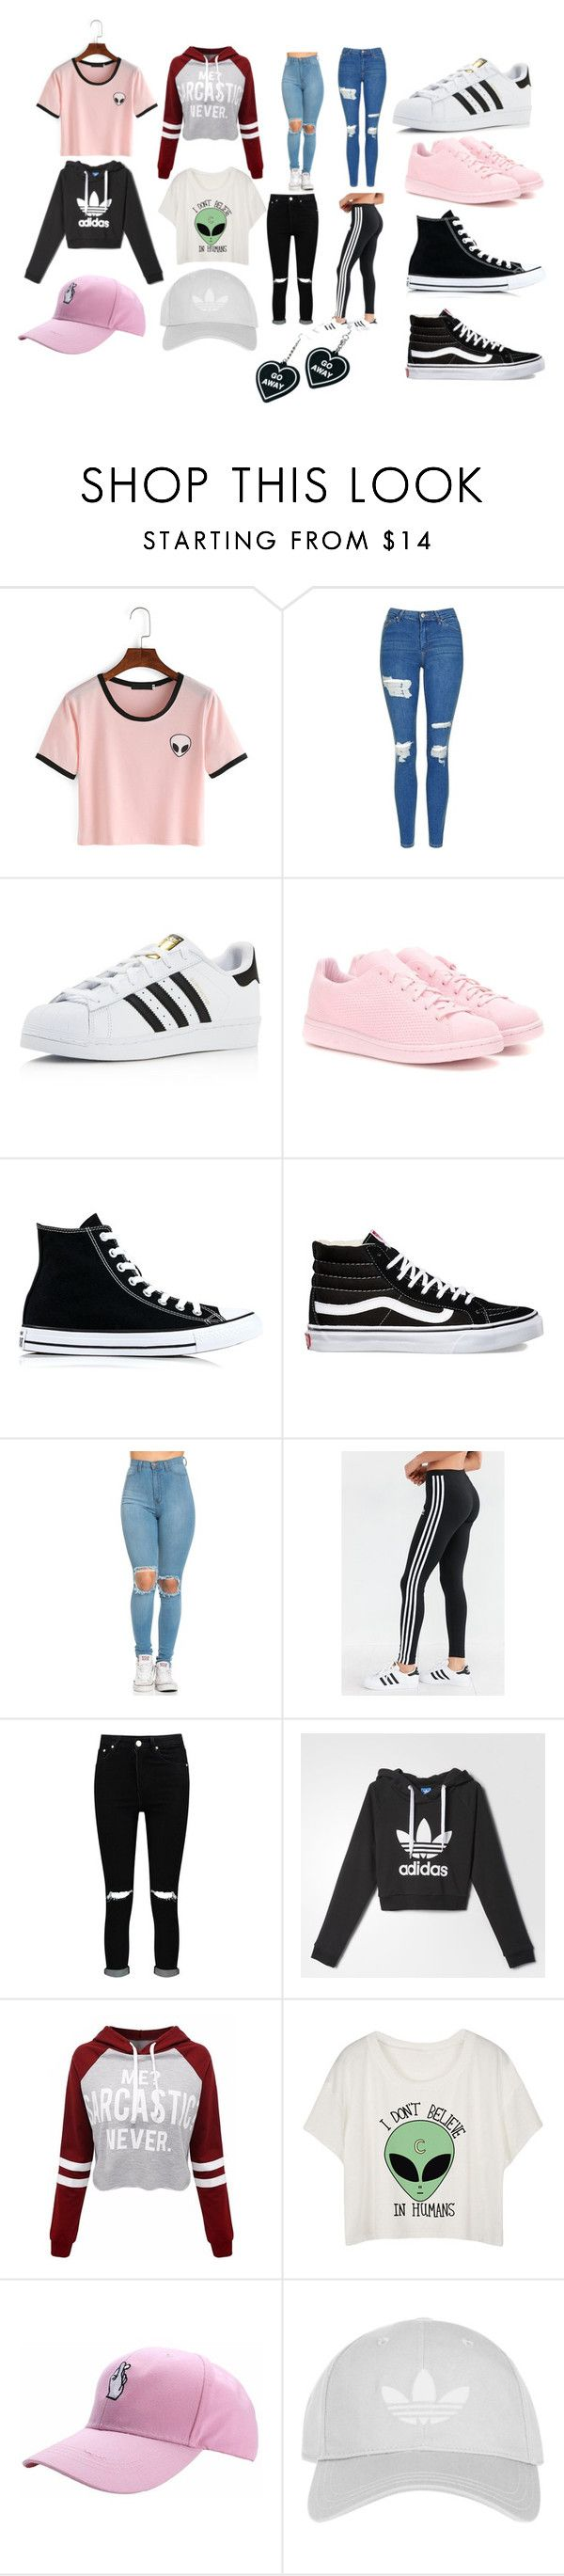 """""""High School Outfits"""" by kpoptrash2233 on Polyvore featuring Topshop, adidas, adidas Originals, Converse, Vans, Boohoo and Witch Worldwide"""